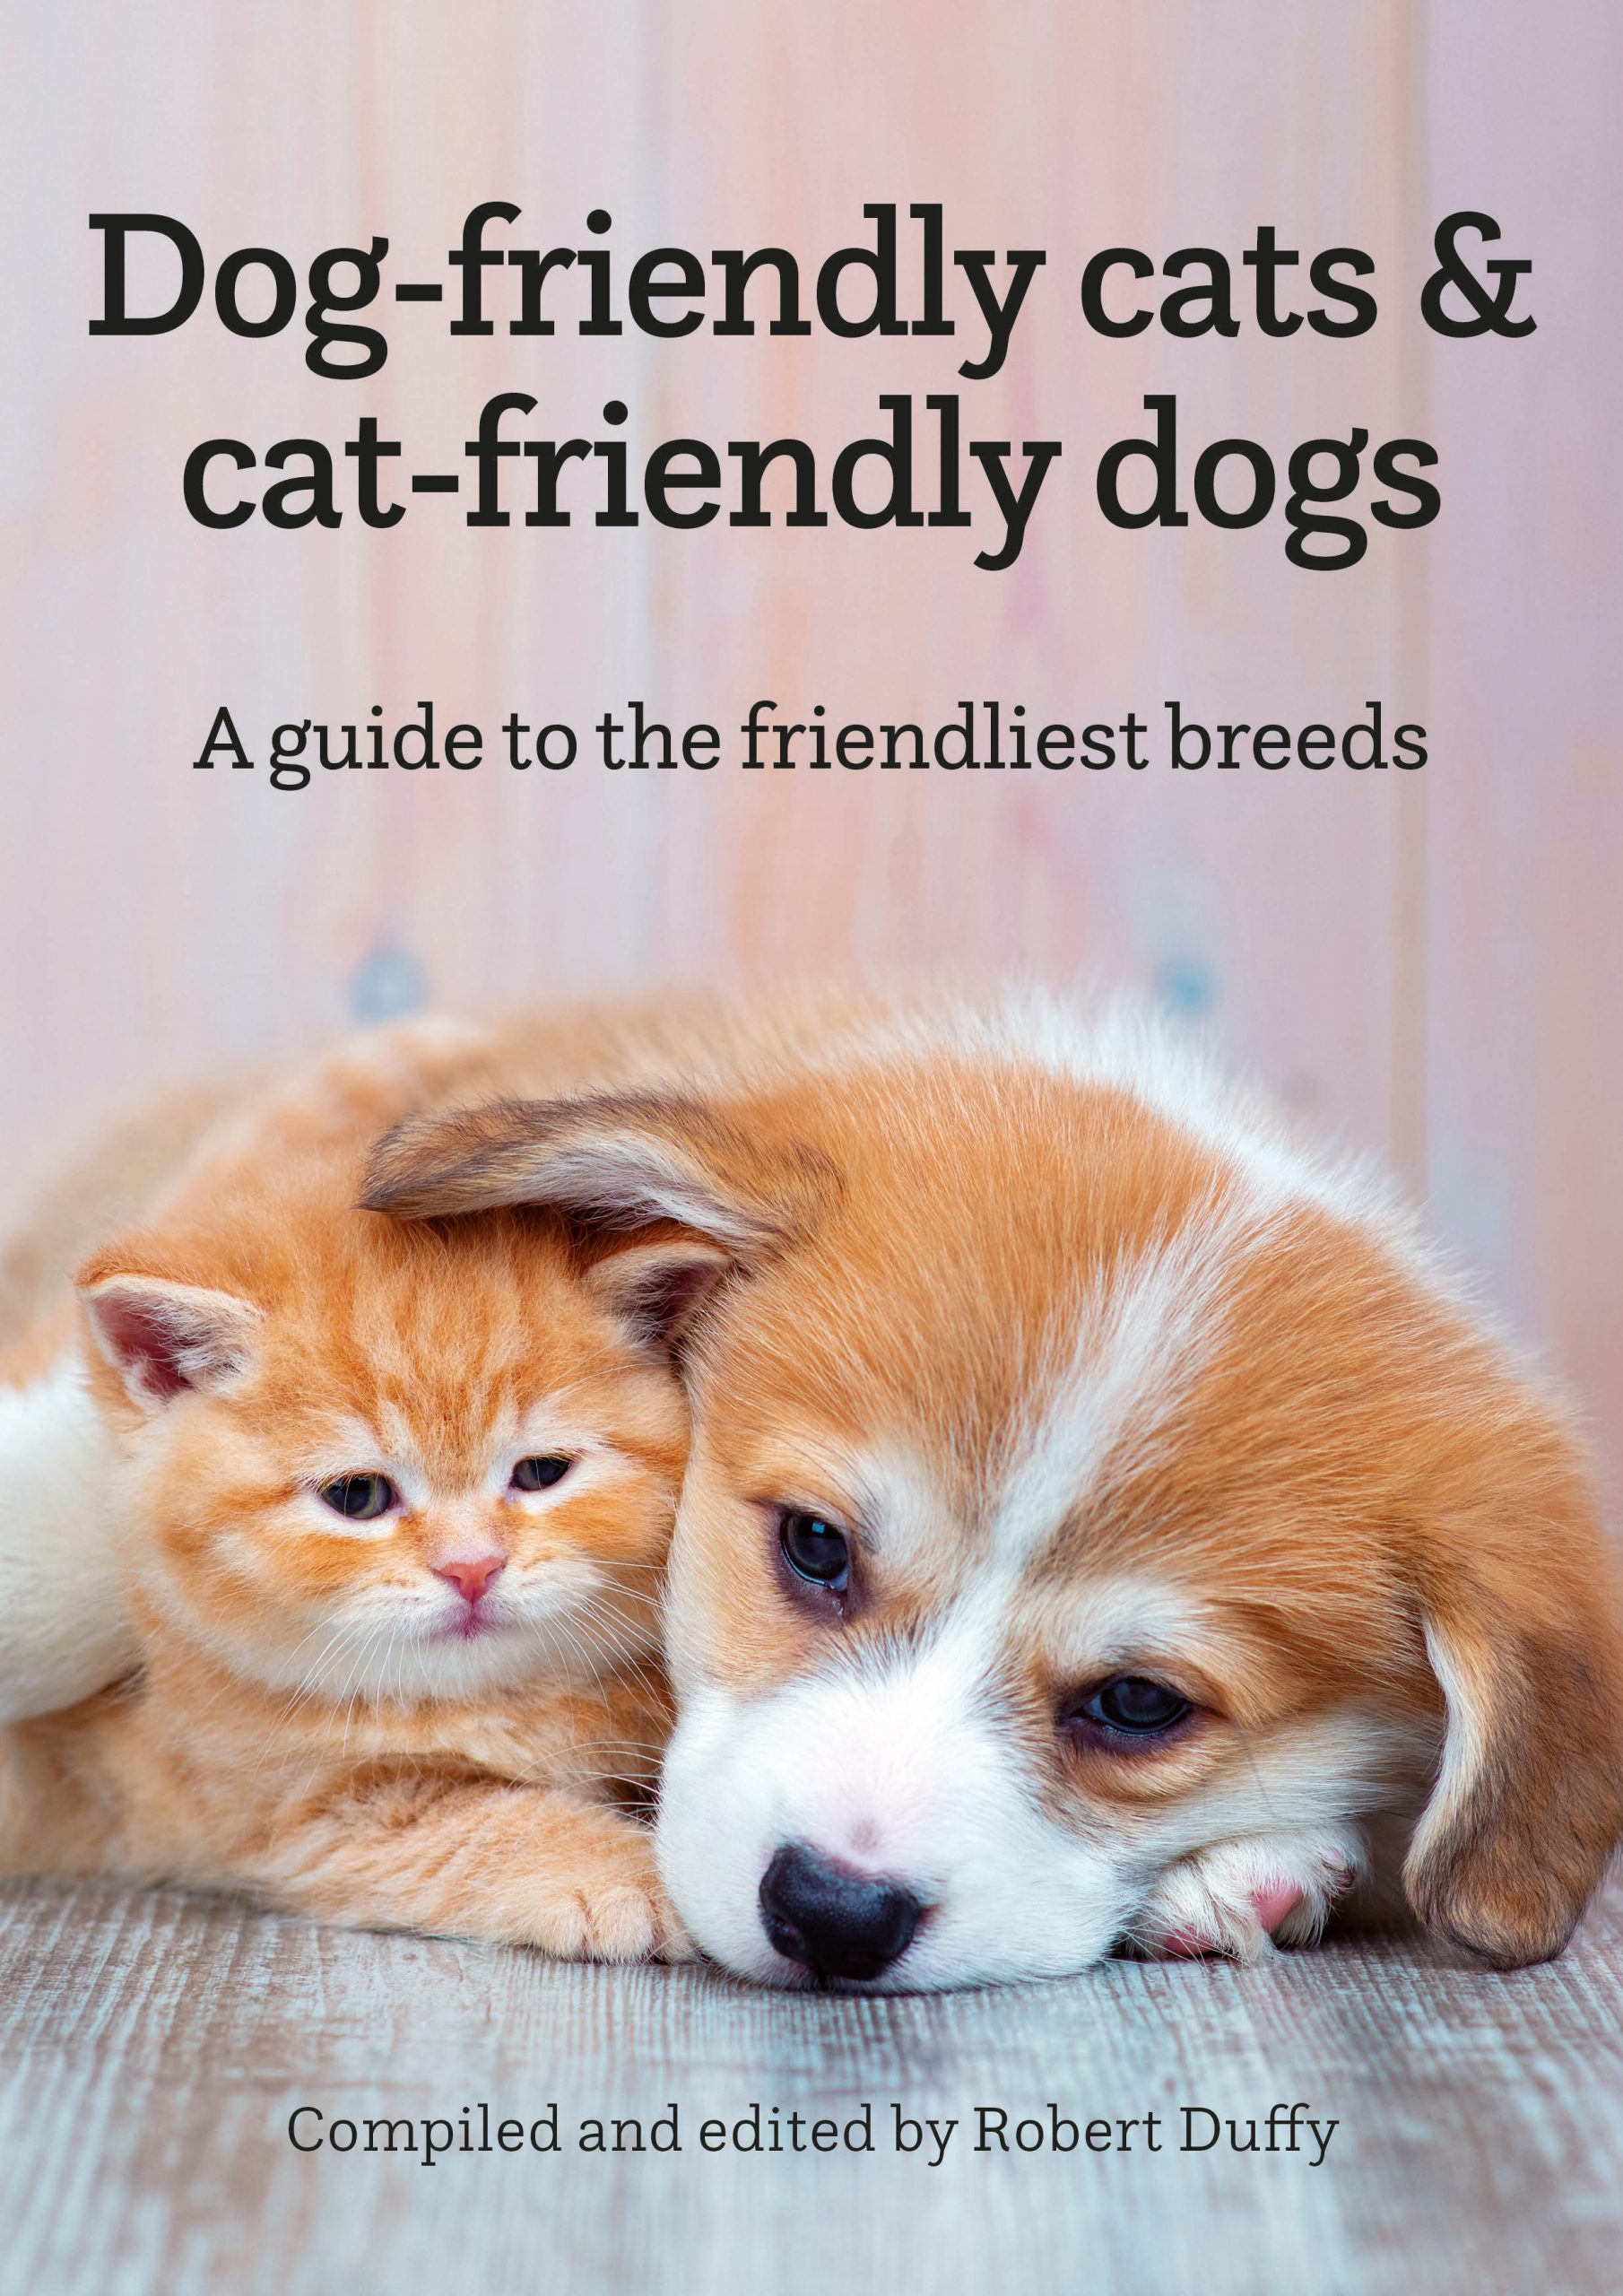 Dog-friendly Cats & Cat-friendly Dogs: A Guide To The Friendliest Breeds